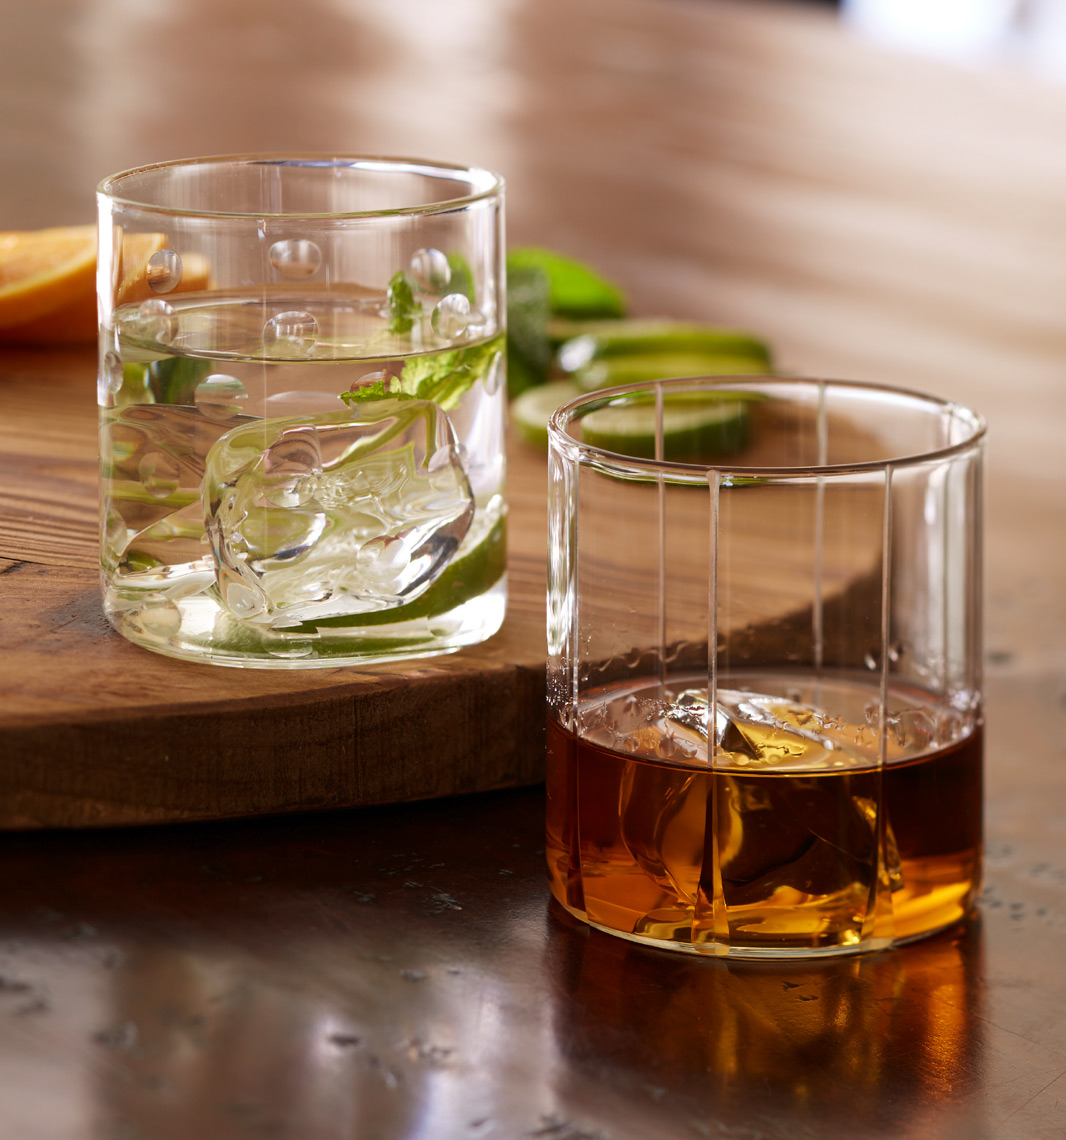 glass of vodka with mint leaves and glass of whiskey on the rocks San Francisco food photographer